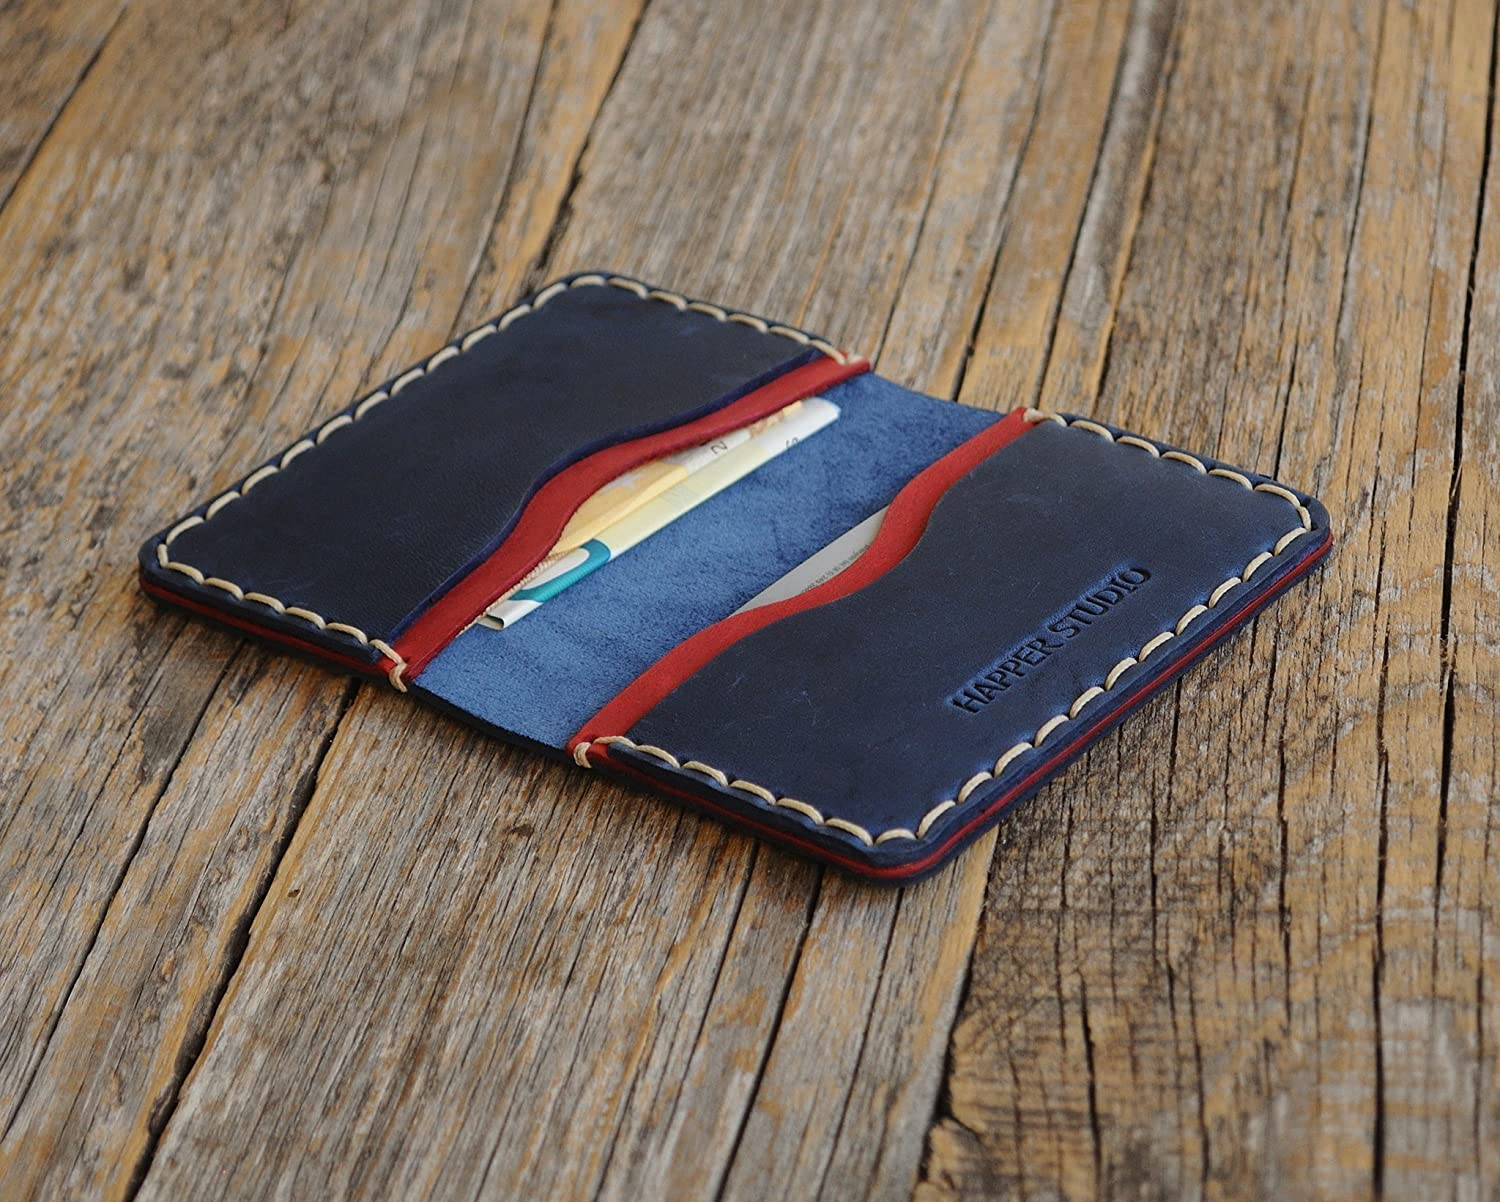 Personalised Leather Wallet. Blue and Red Credit Card, Cash or ID Holder. Rustic Style Unisex Pouch. Monogram your Name or Initials